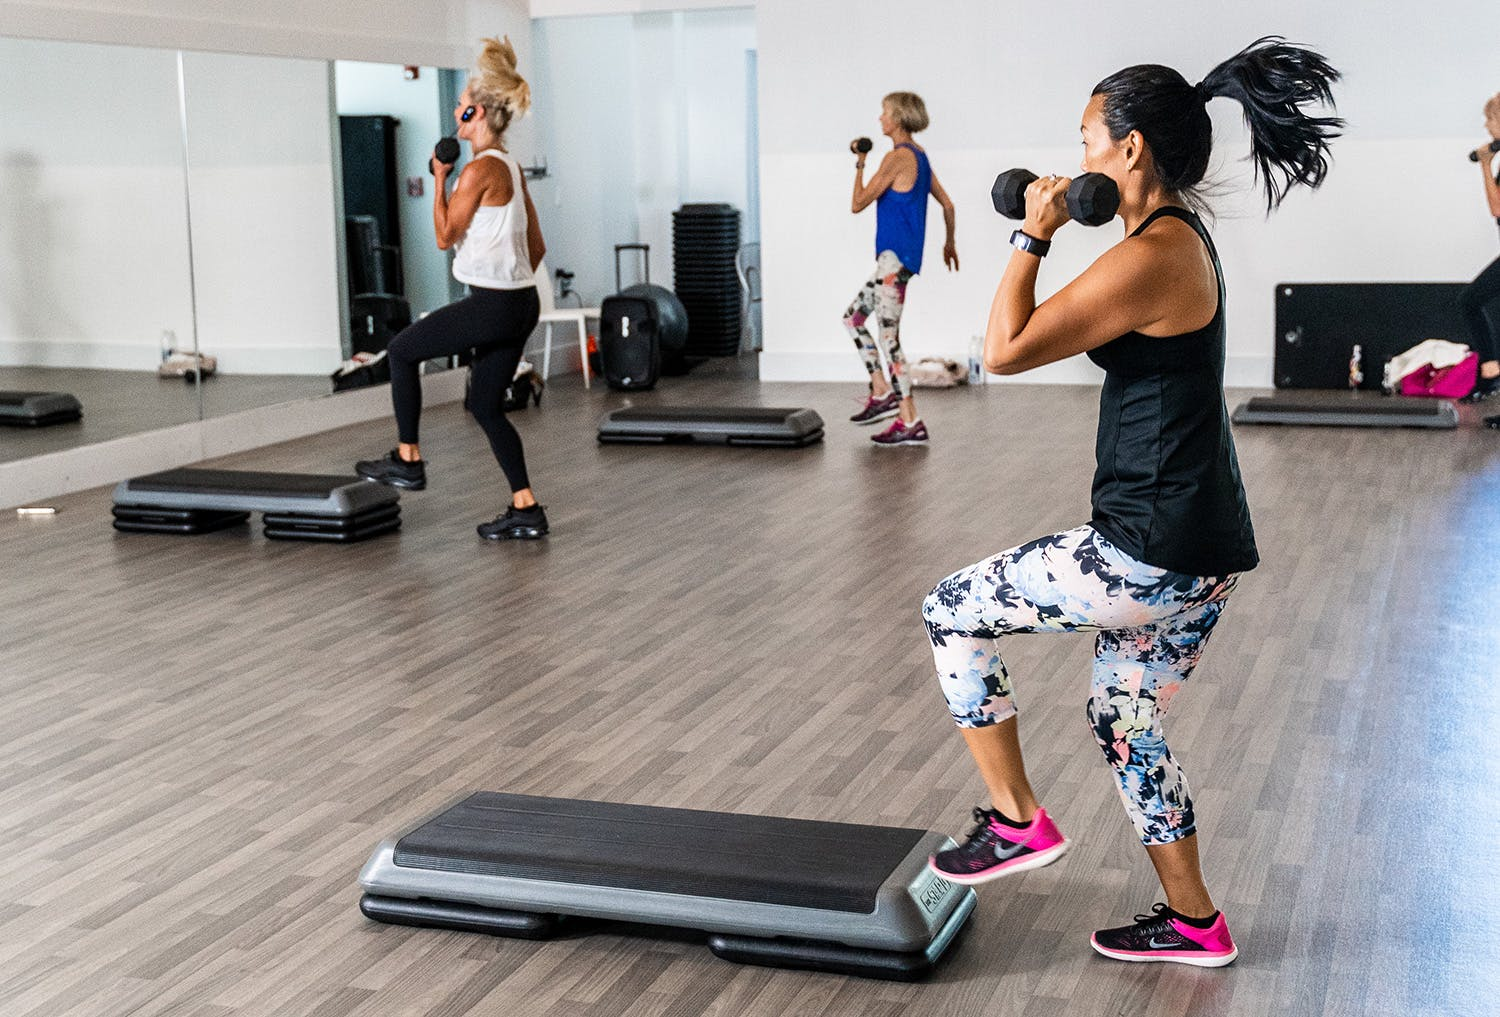 Members in a power sculpt class at the gym